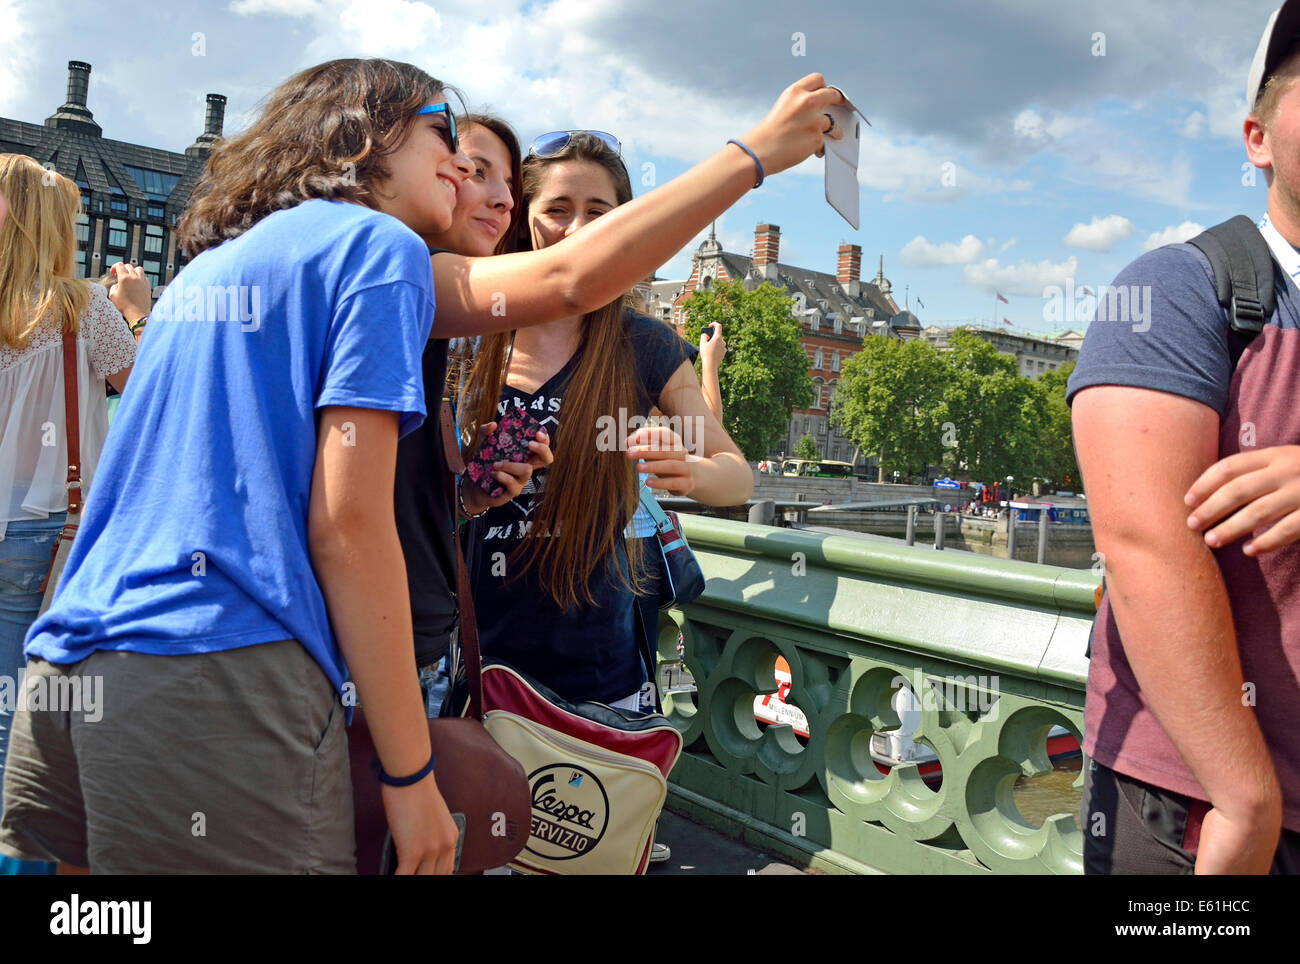 London, England, UK. Three young women on Westminster Bridge taking a selfie with a mobile phone - Stock Image